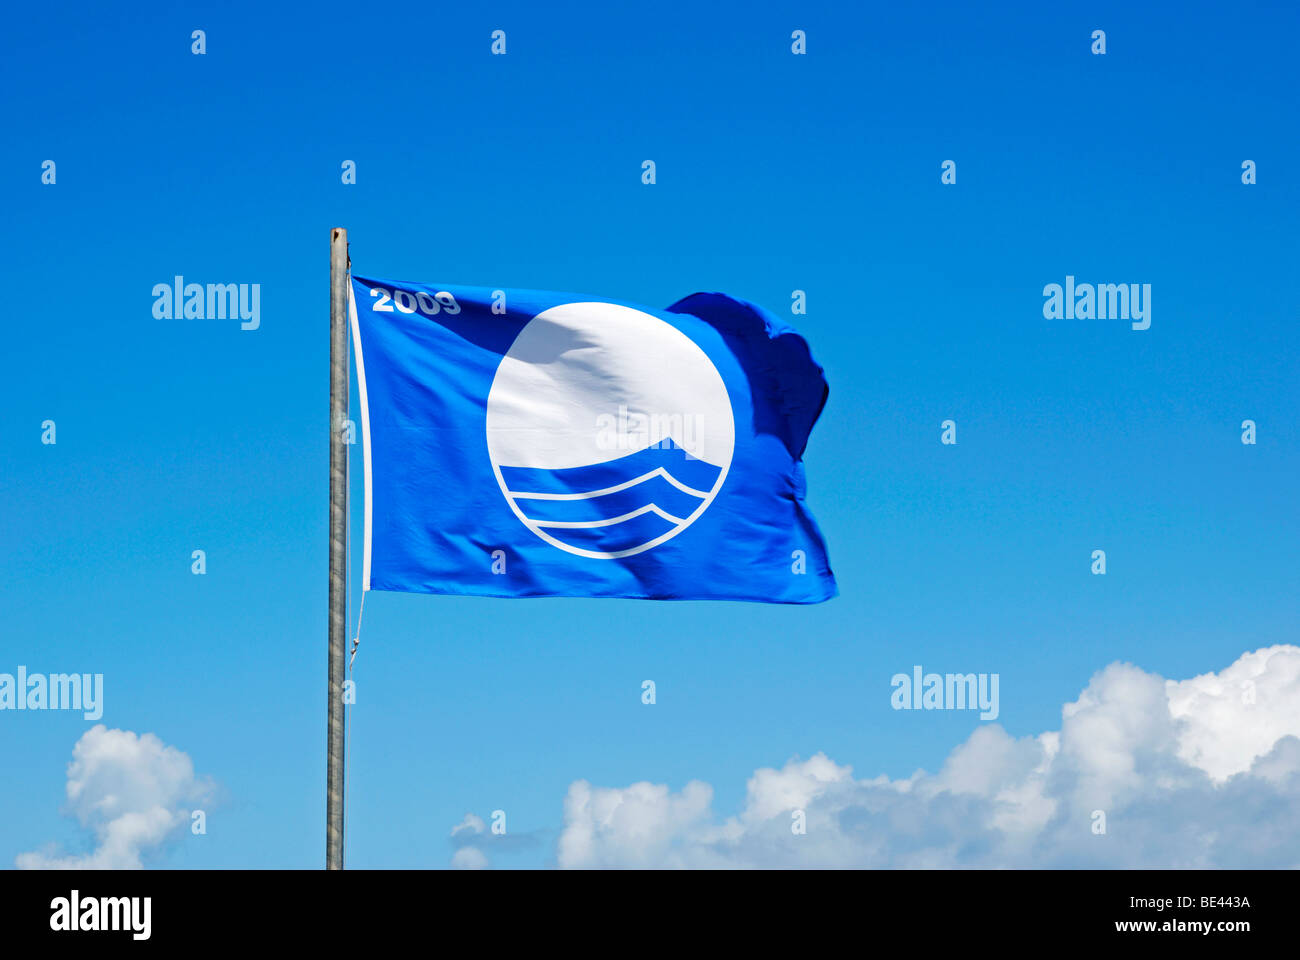 the blue flag awarded for beach and water cleanliness flying over porthmeor beach in cornwall, uk - Stock Image